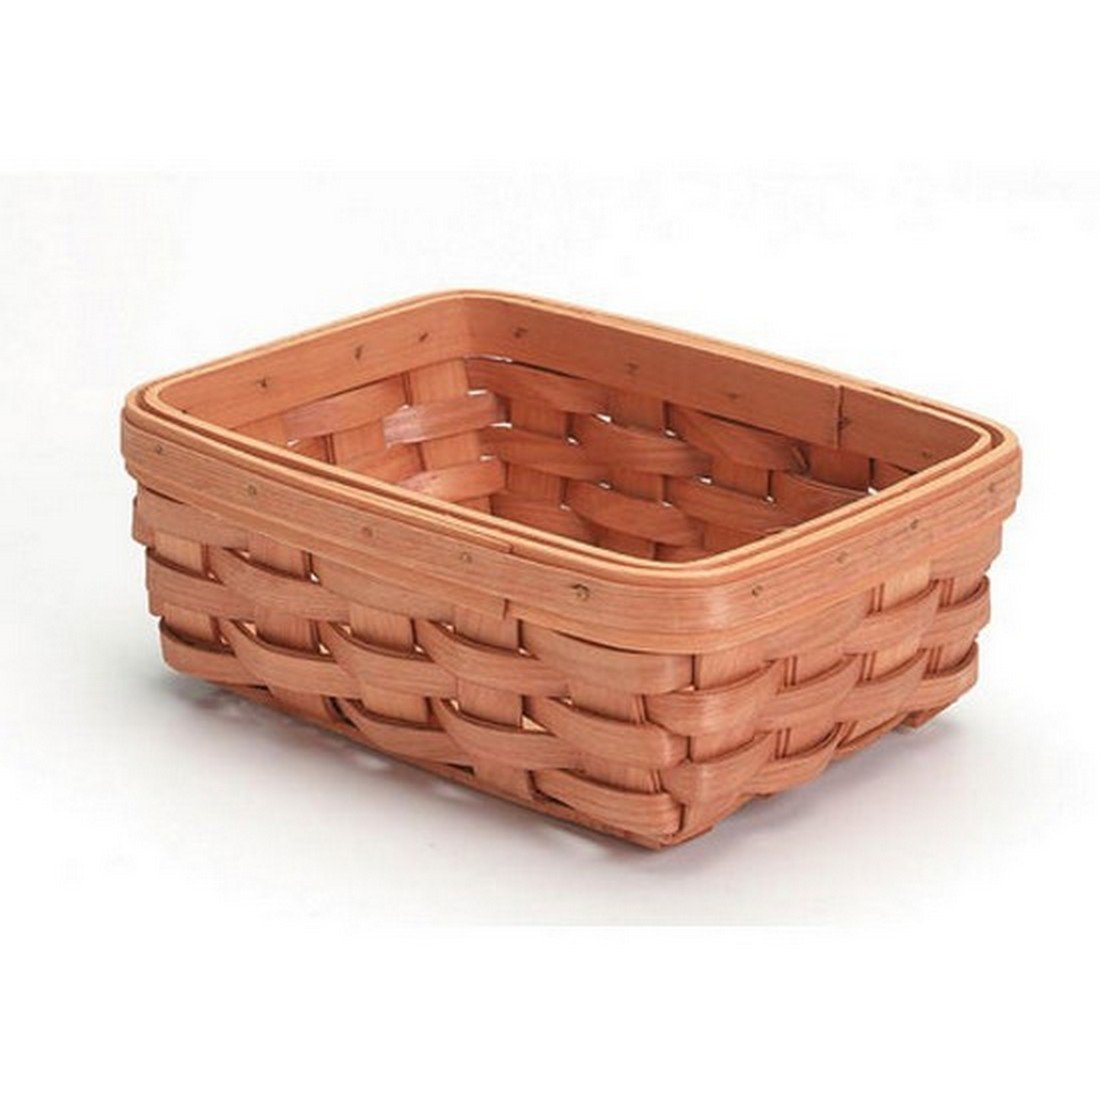 Darice Basket Shelf Wood Country Tray 8 x 6 x 3in. (12 Pack) 2848 16 bundled with 1 Artsiga Crafts Small Bag by Homeline Goods Darice Baskets (Image #2)